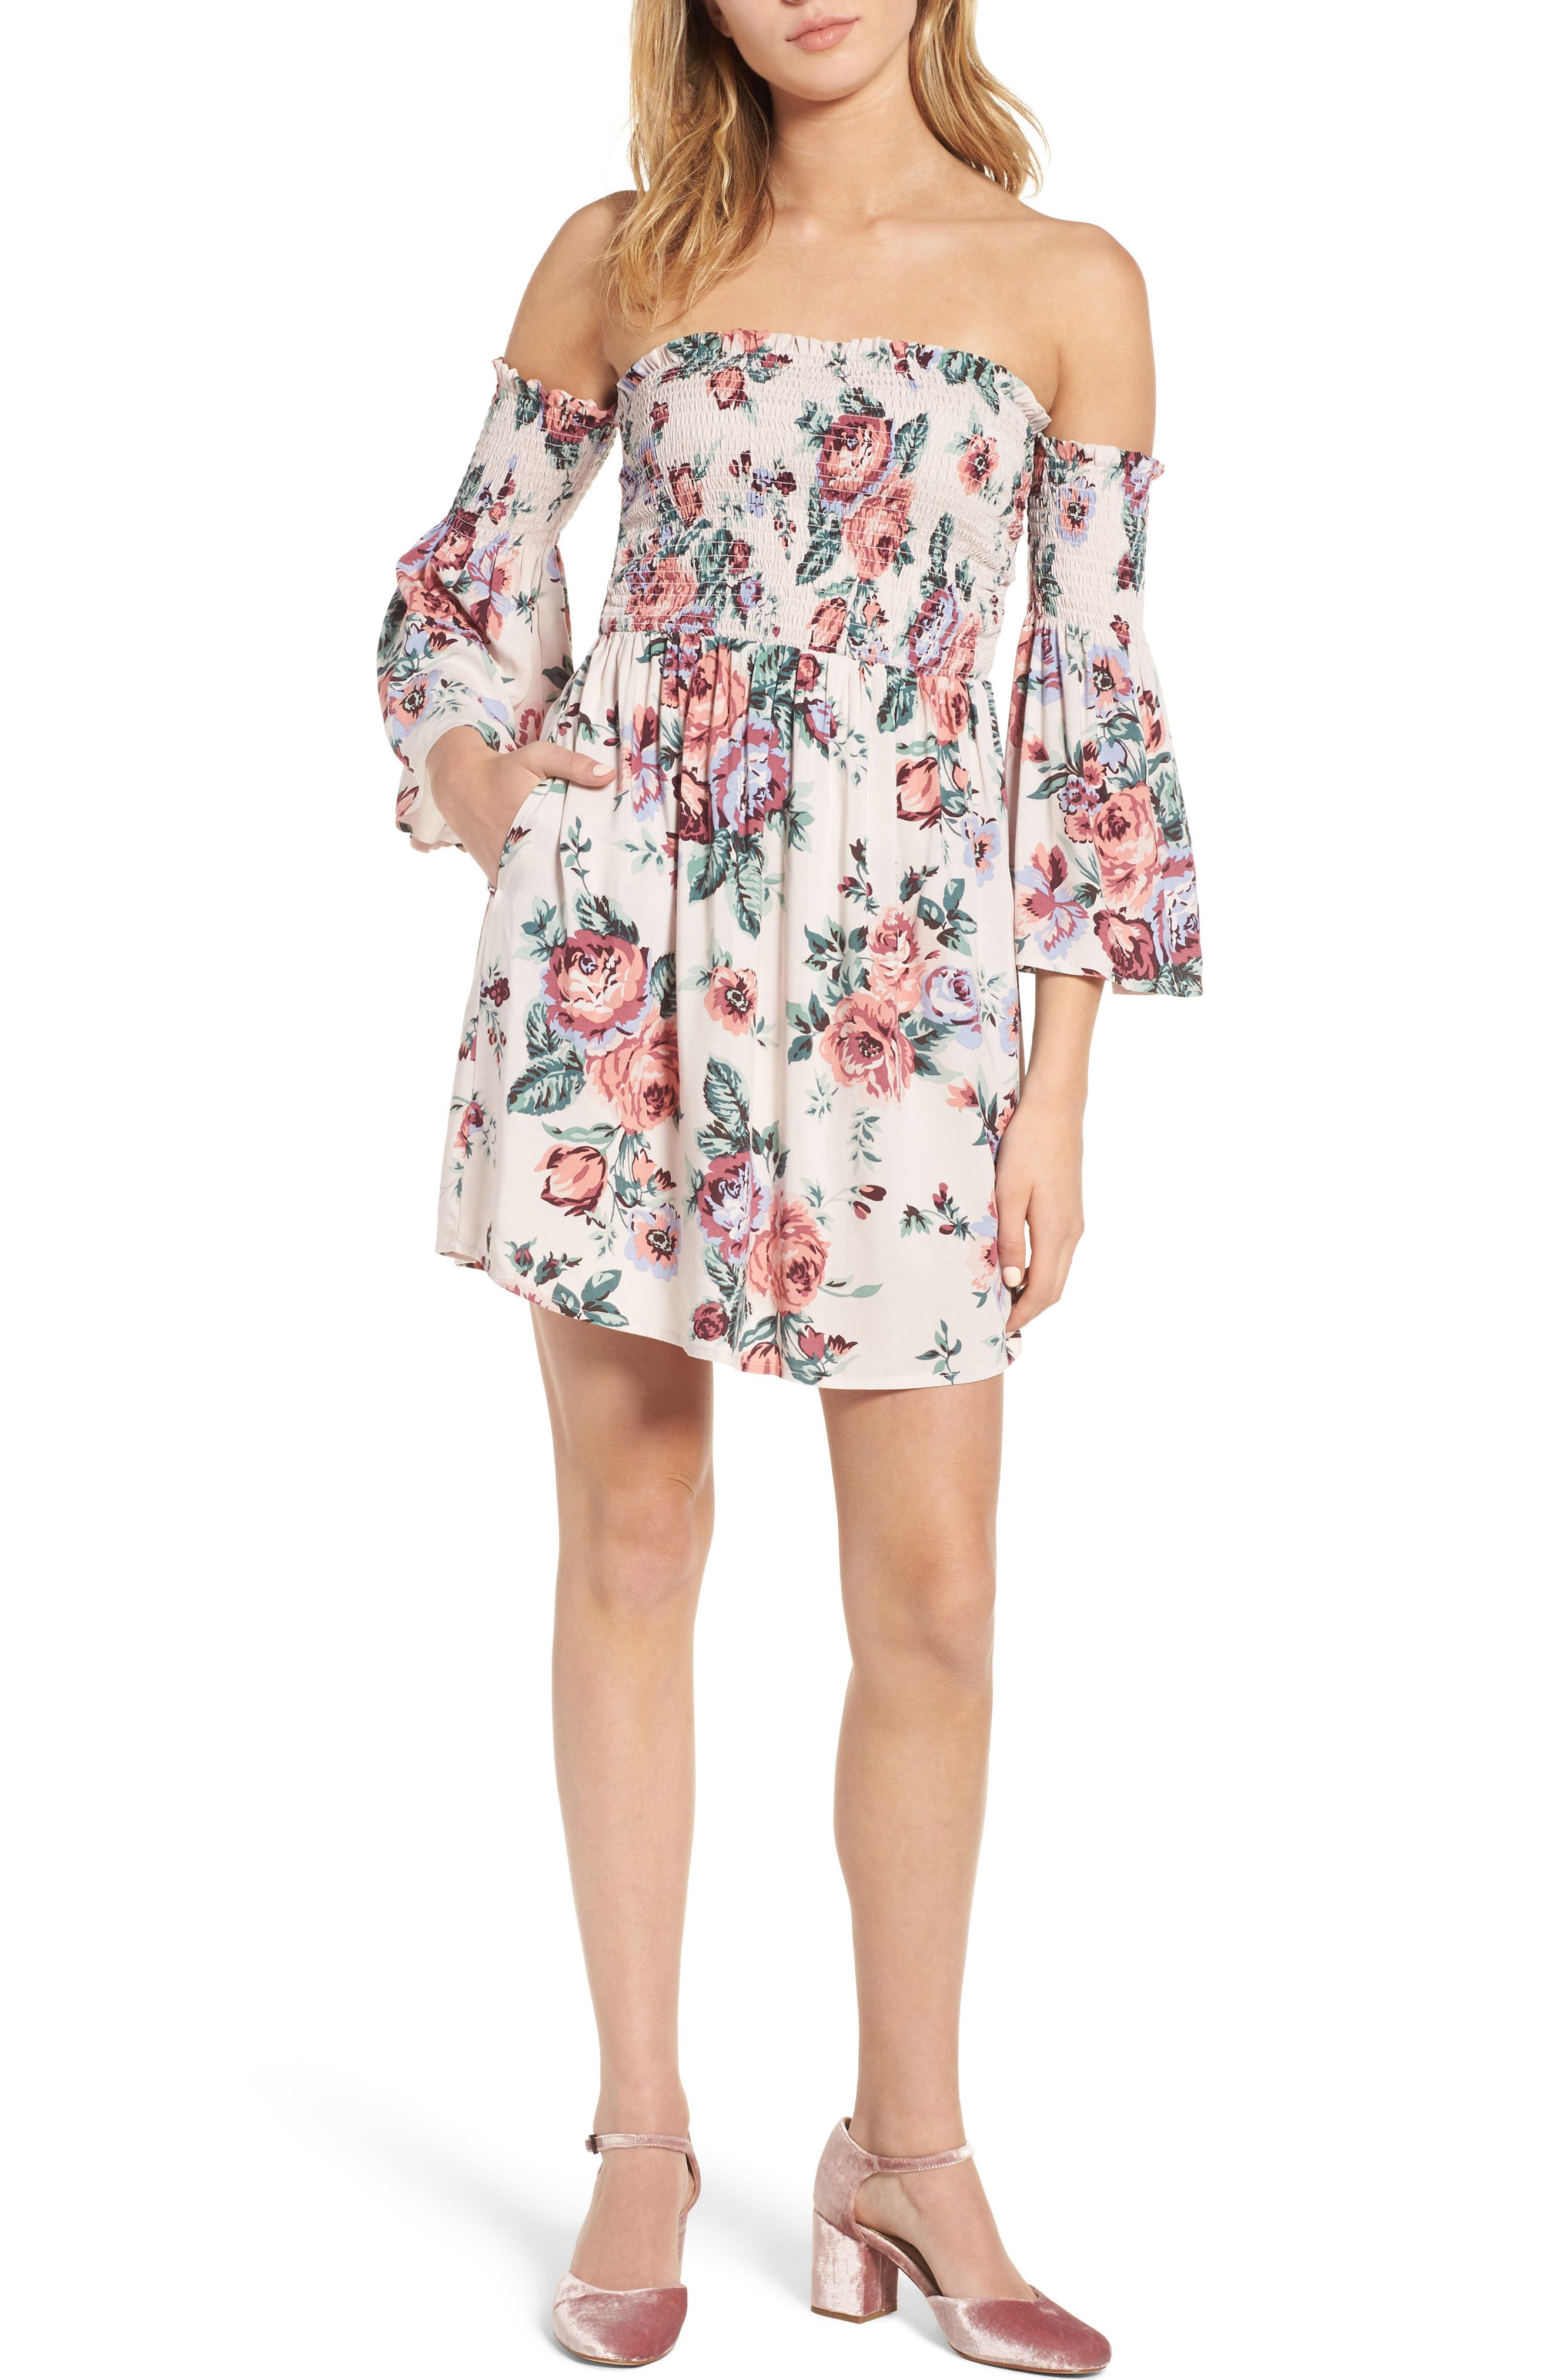 Mimi Chica Floral Print Off the Shoulder Dress